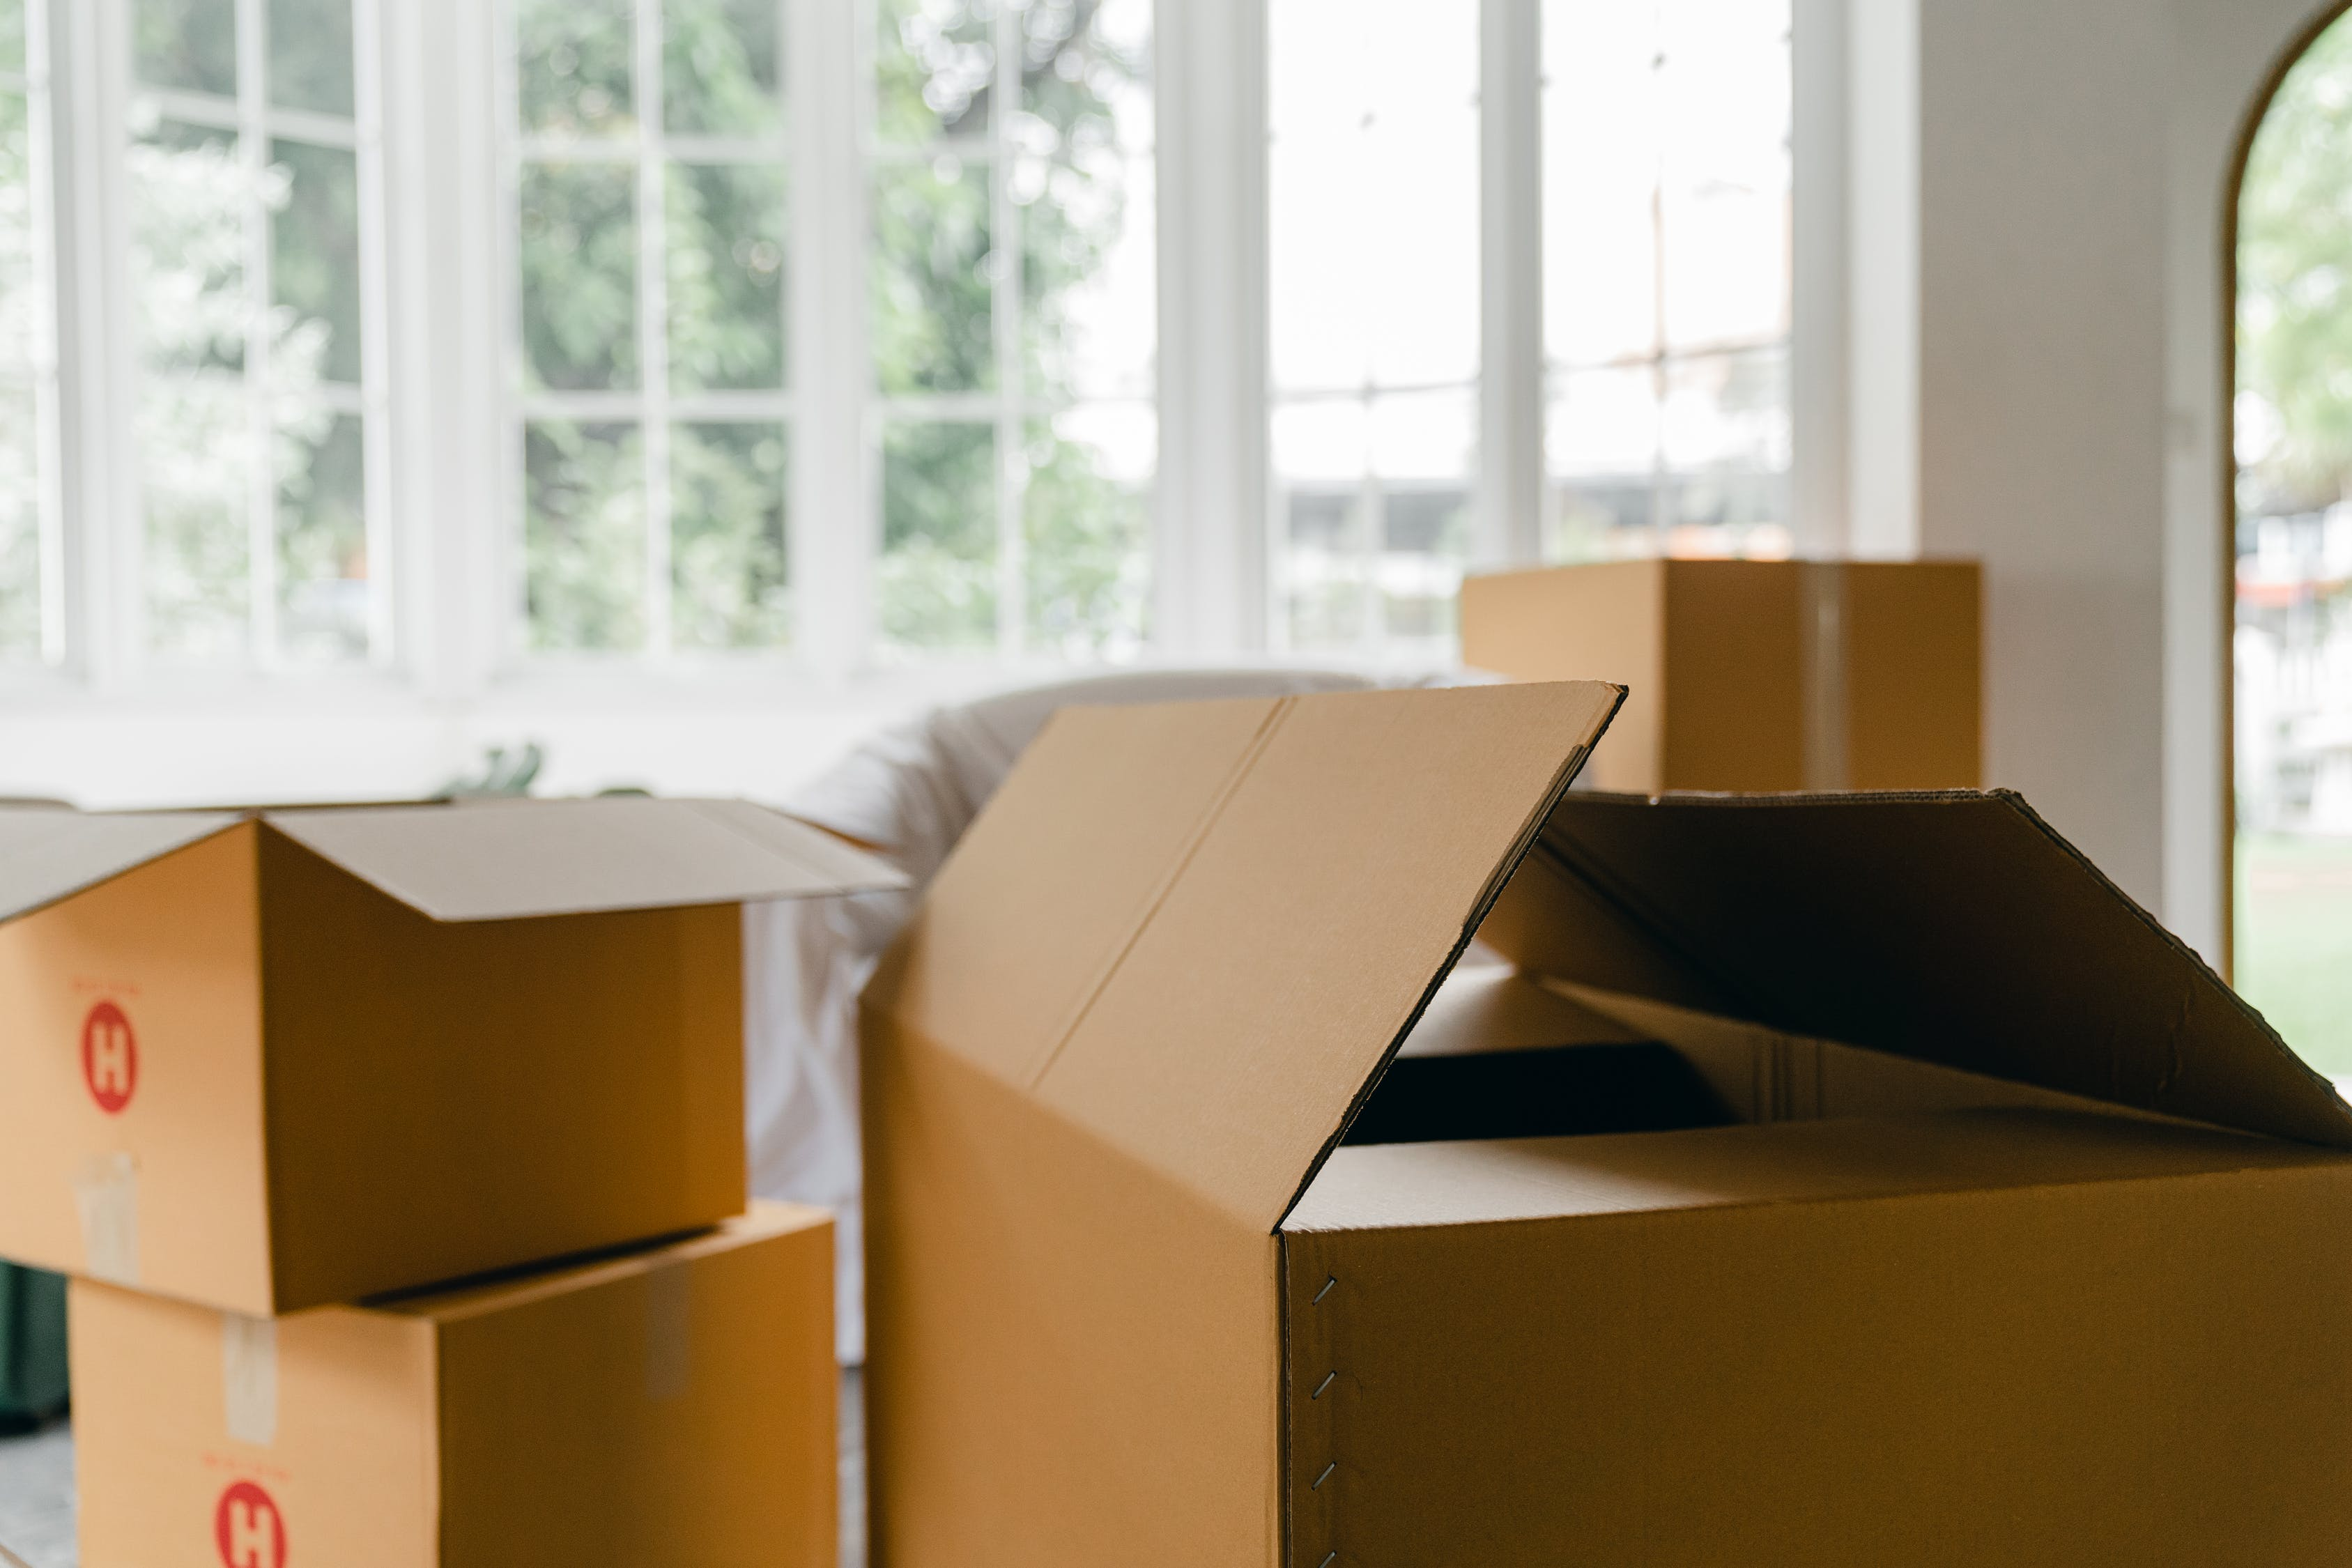 boxes illustrating how many packing supplies do you need